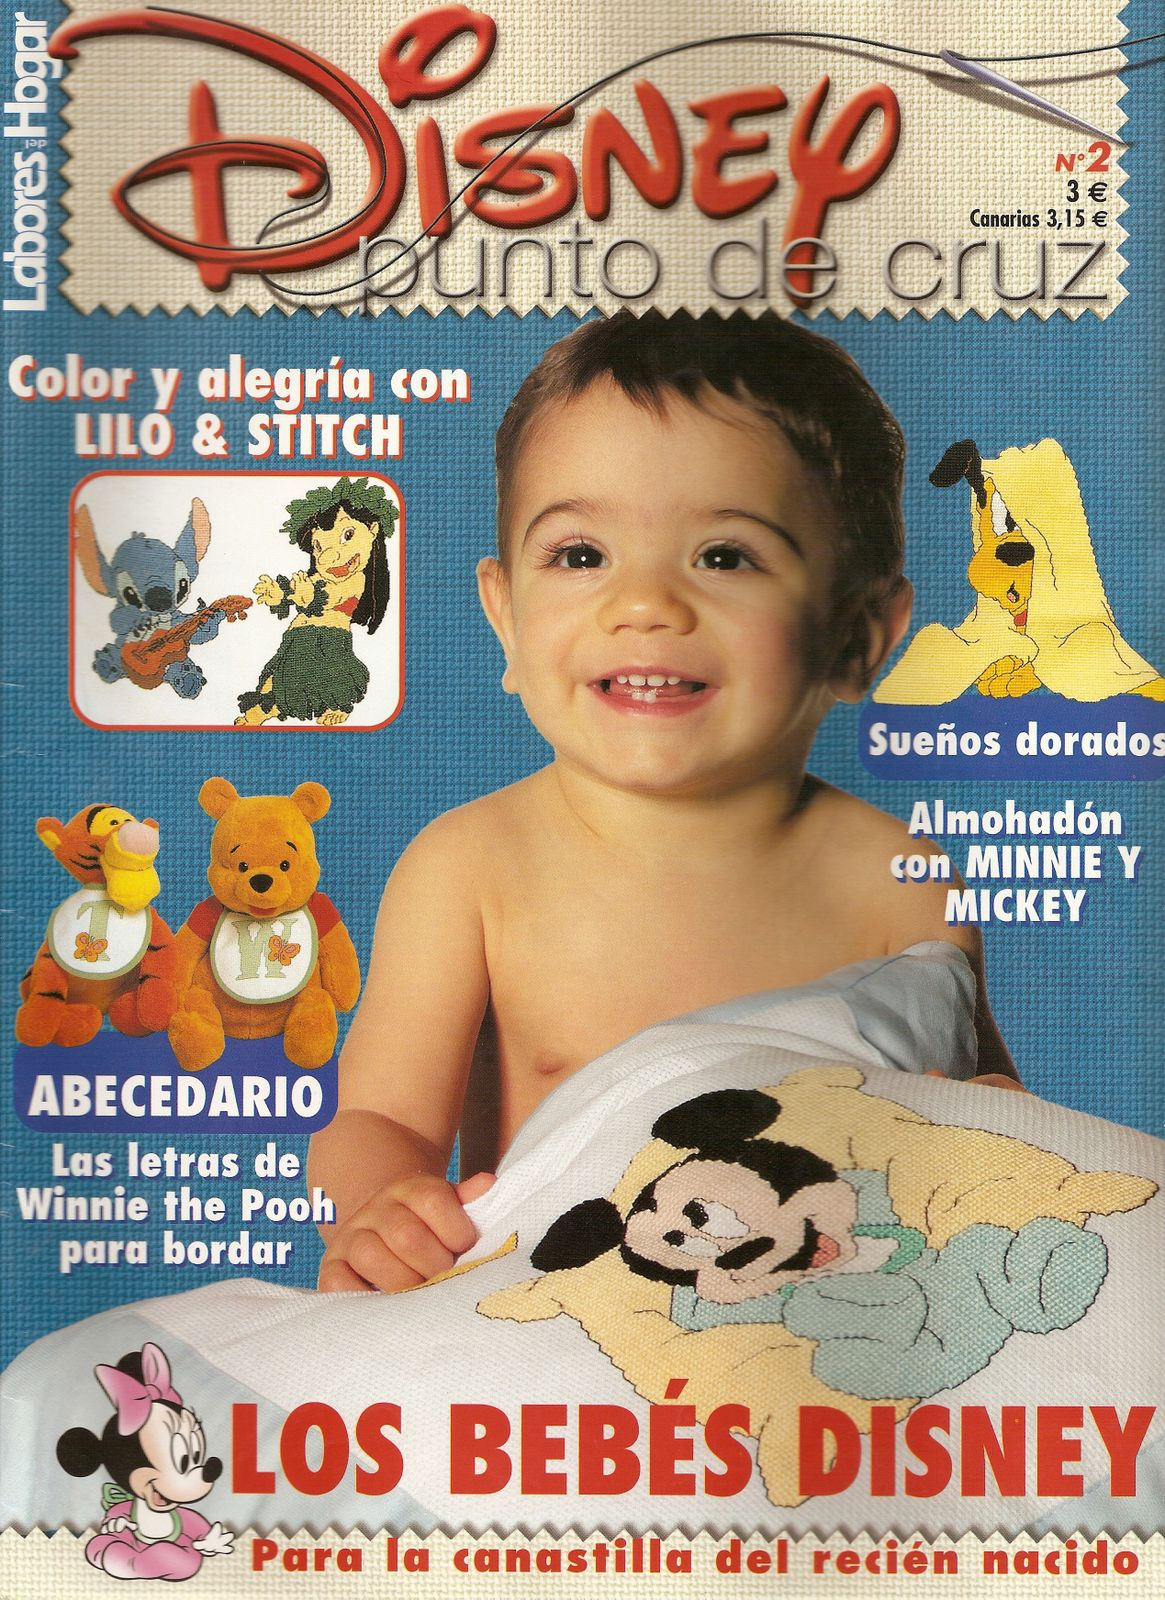 Revistas: Disney Punto de Cruz 1 y 3